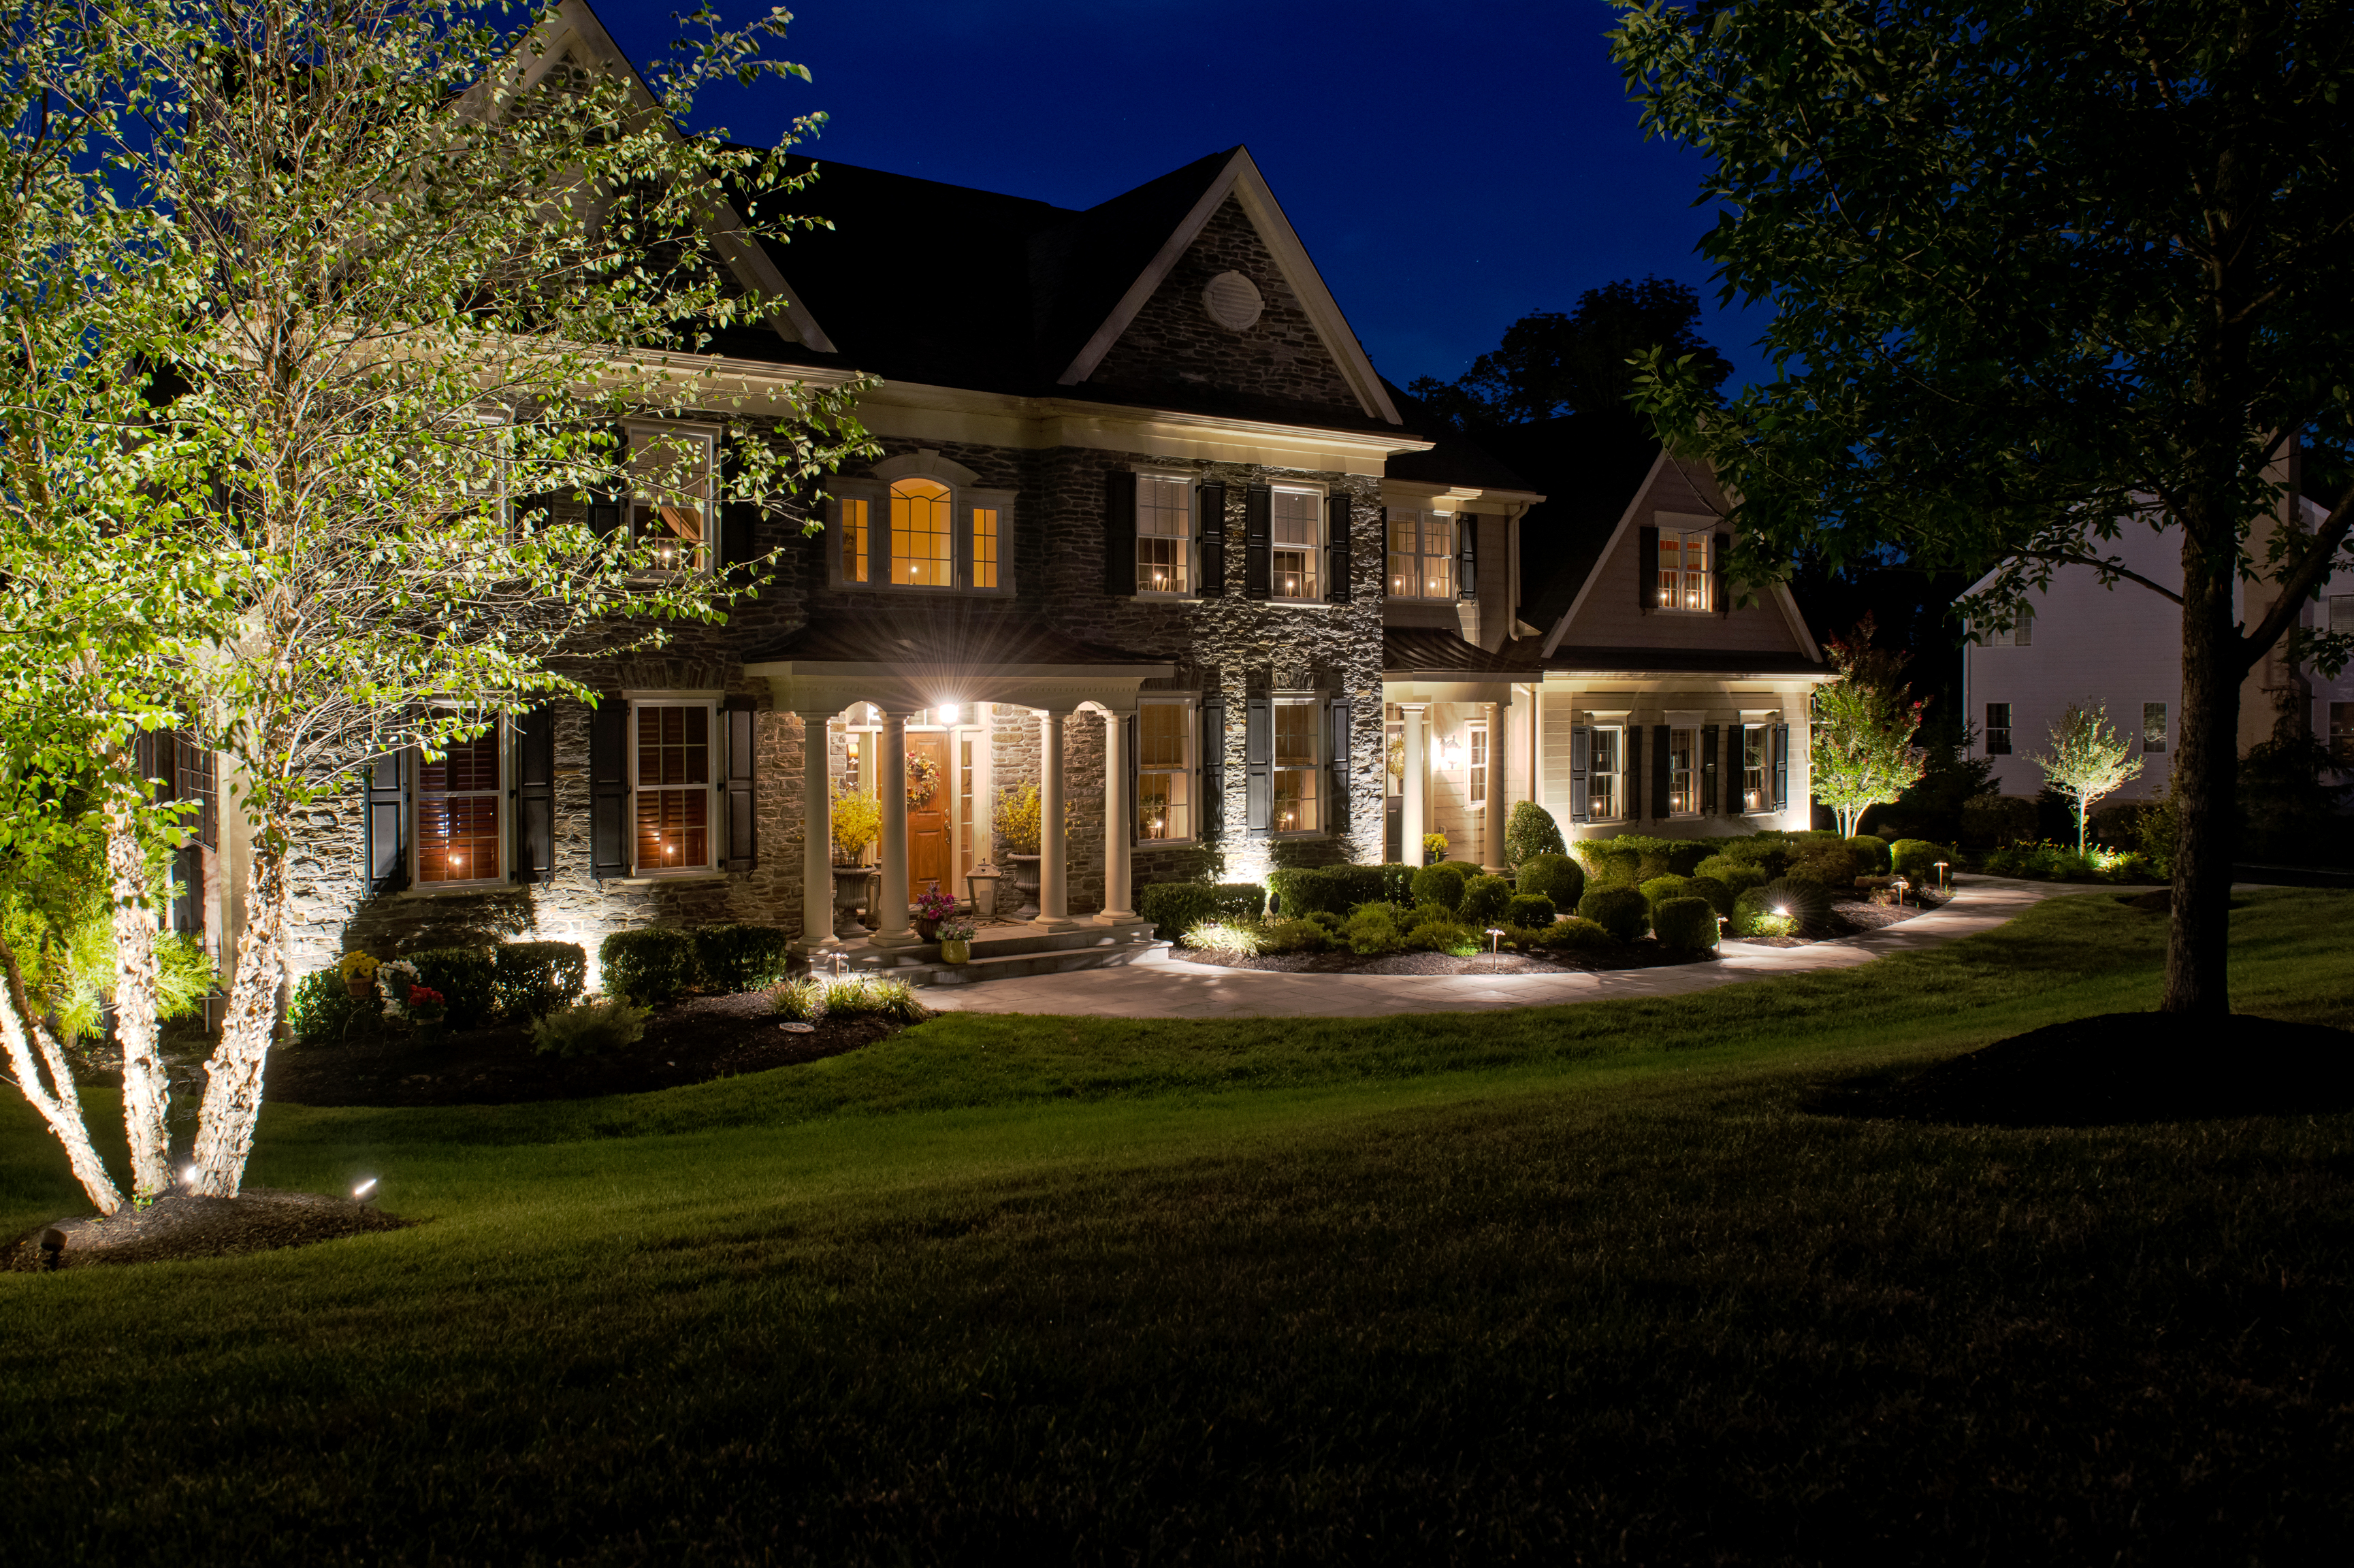 Outdoor Residential Lighting on Front Foundation - Burkholder